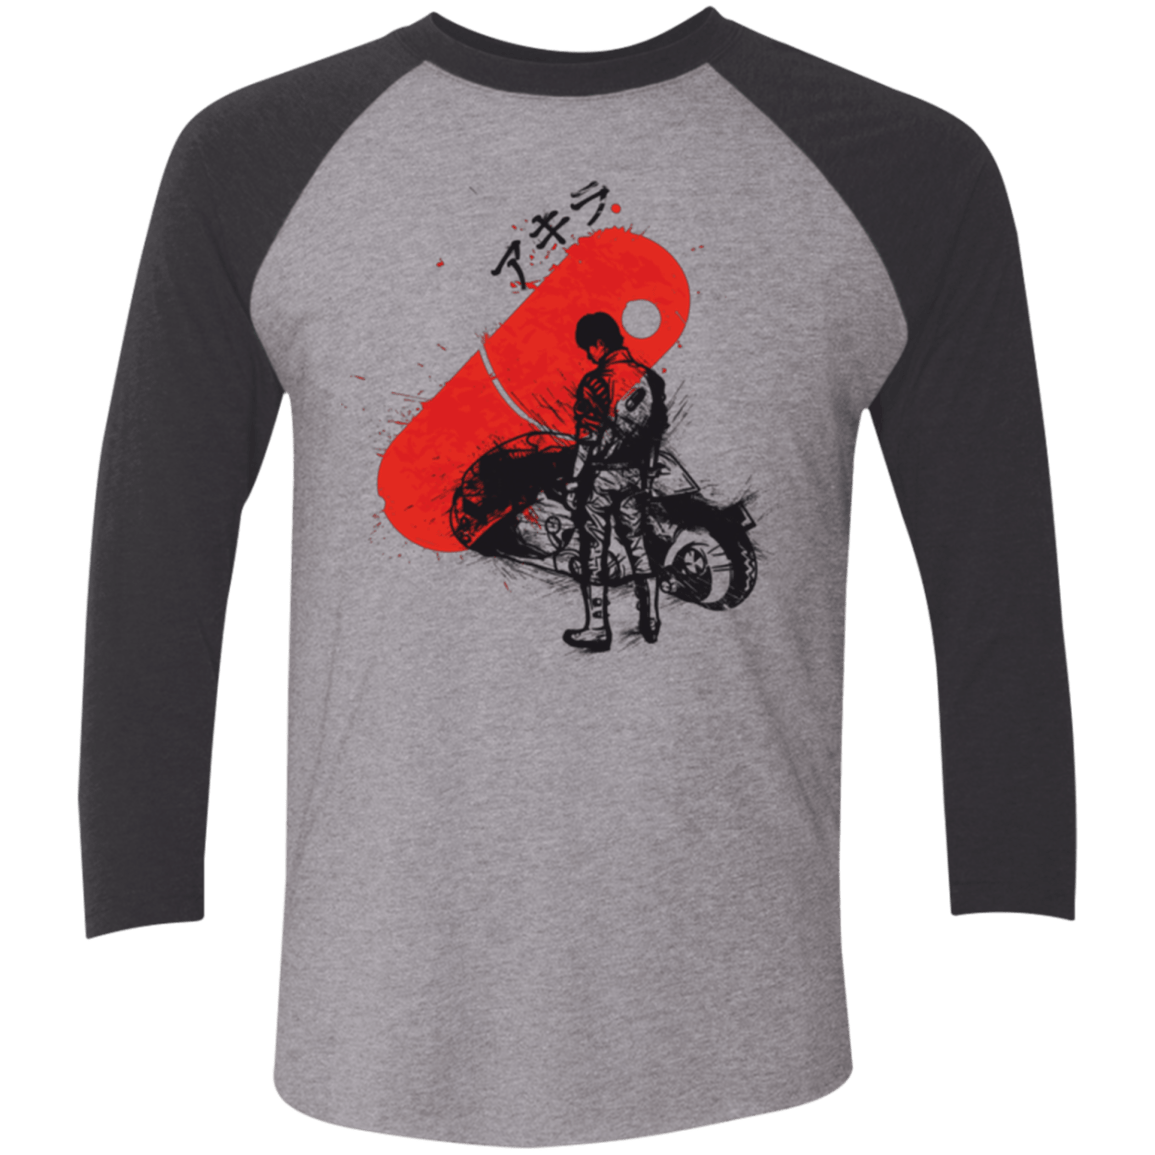 T-Shirts Premium Heather/ Vintage Black / X-Small RED SUN AKIRA Men's Triblend 3/4 Sleeve